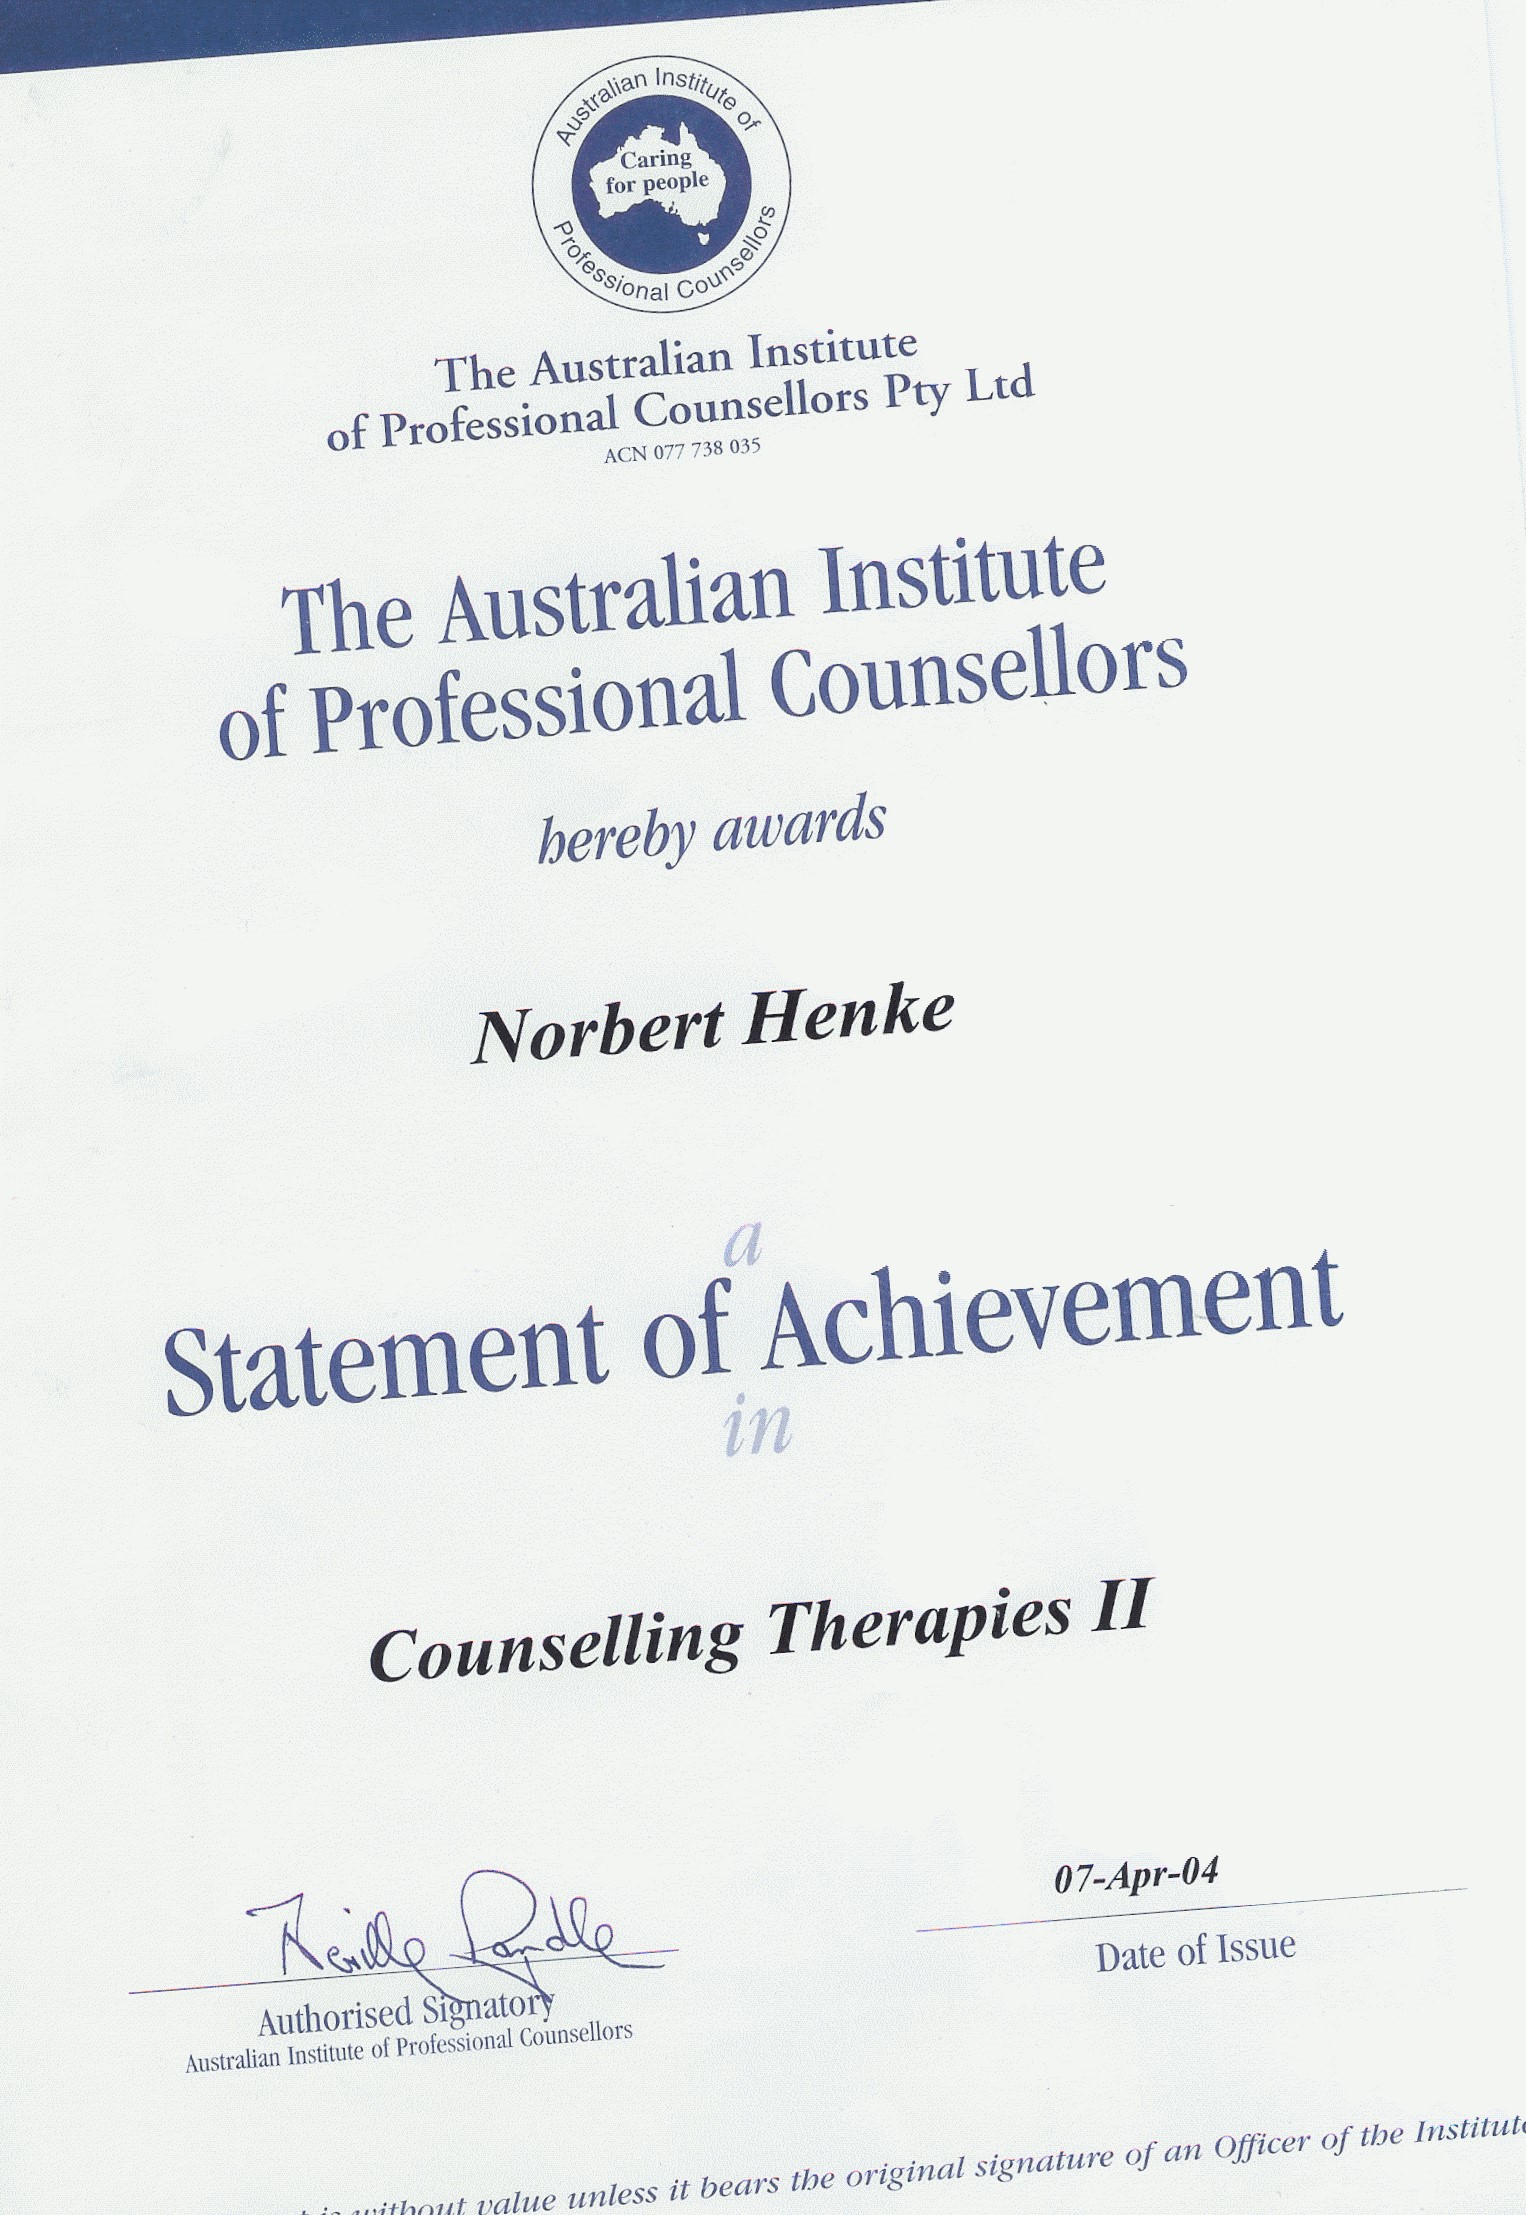 Counselling therapies 2